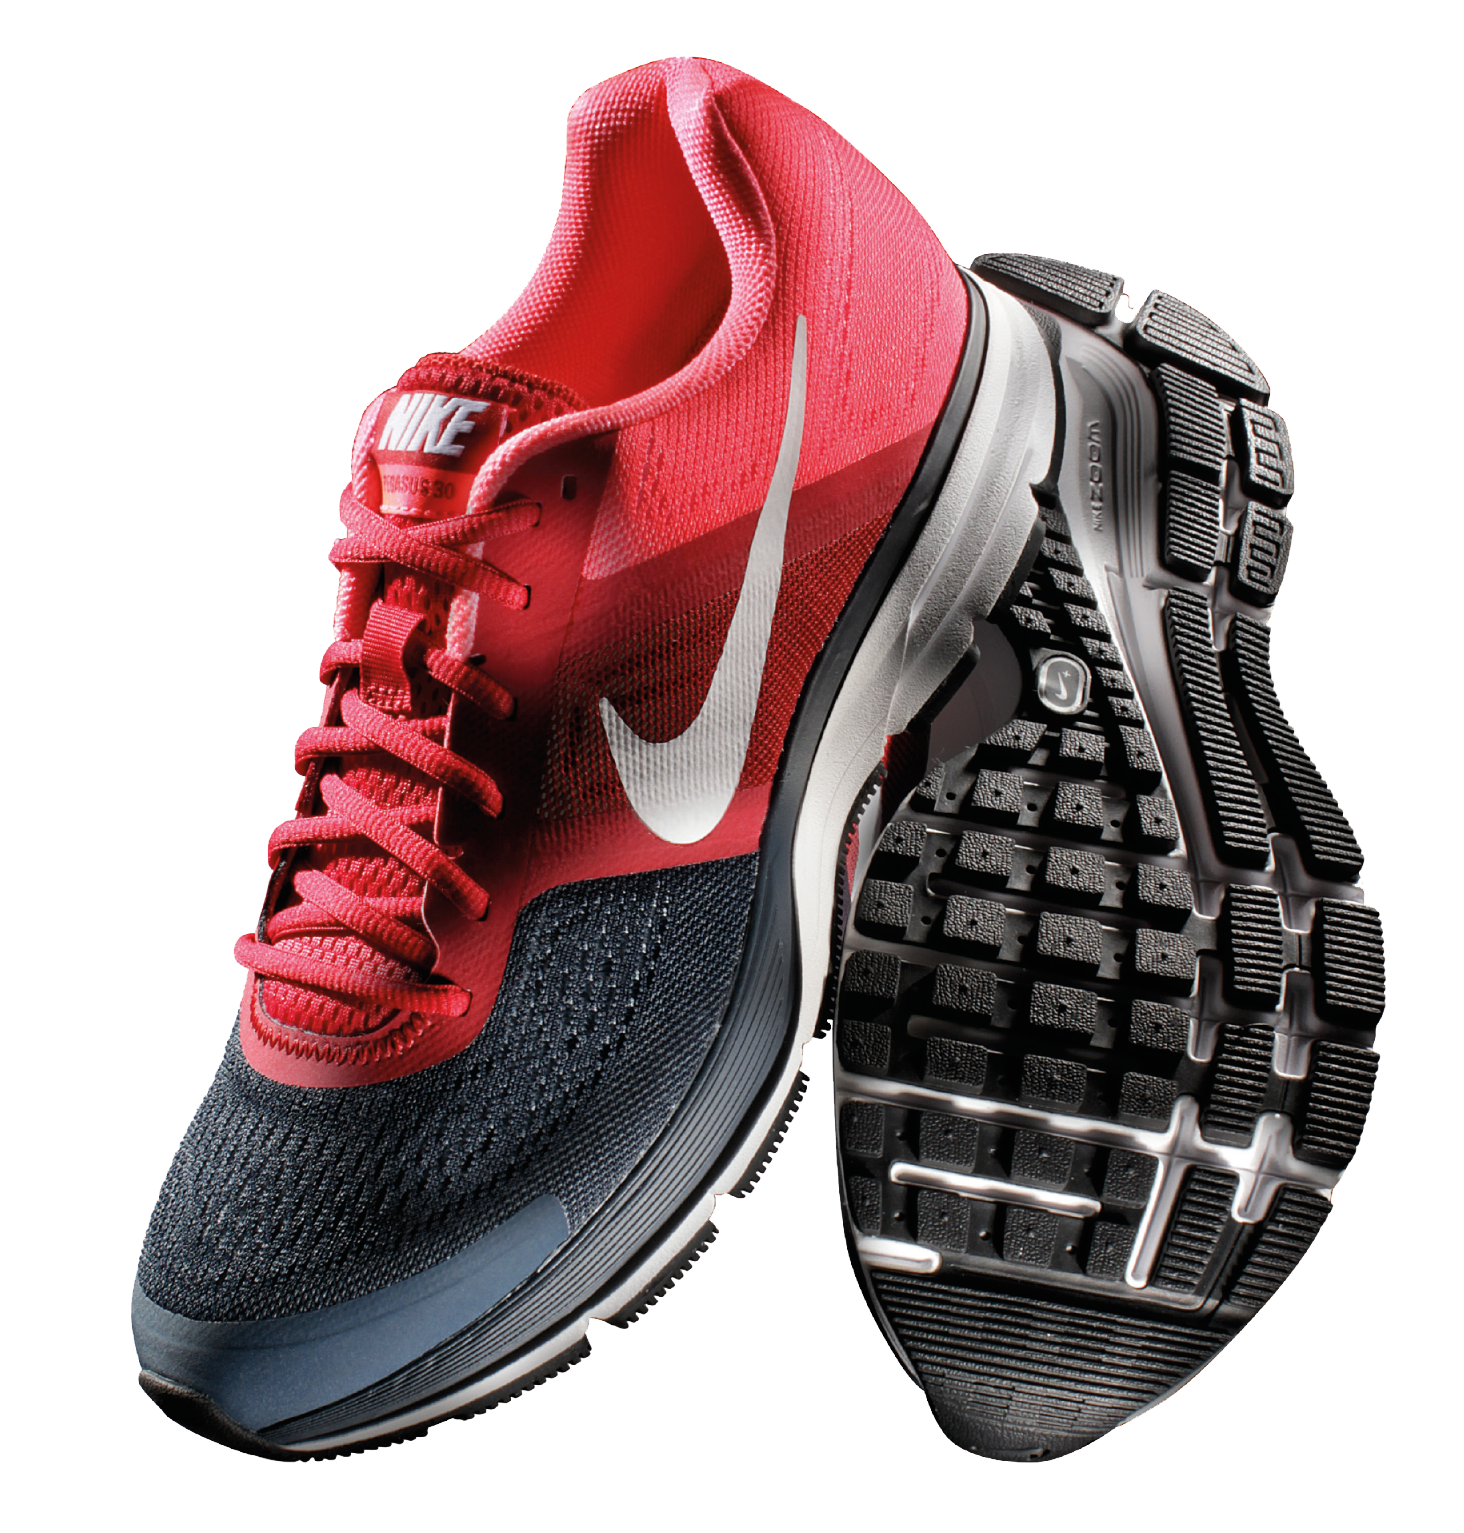 Nike Shoes Transparent PNG - Nike Shoe PNG